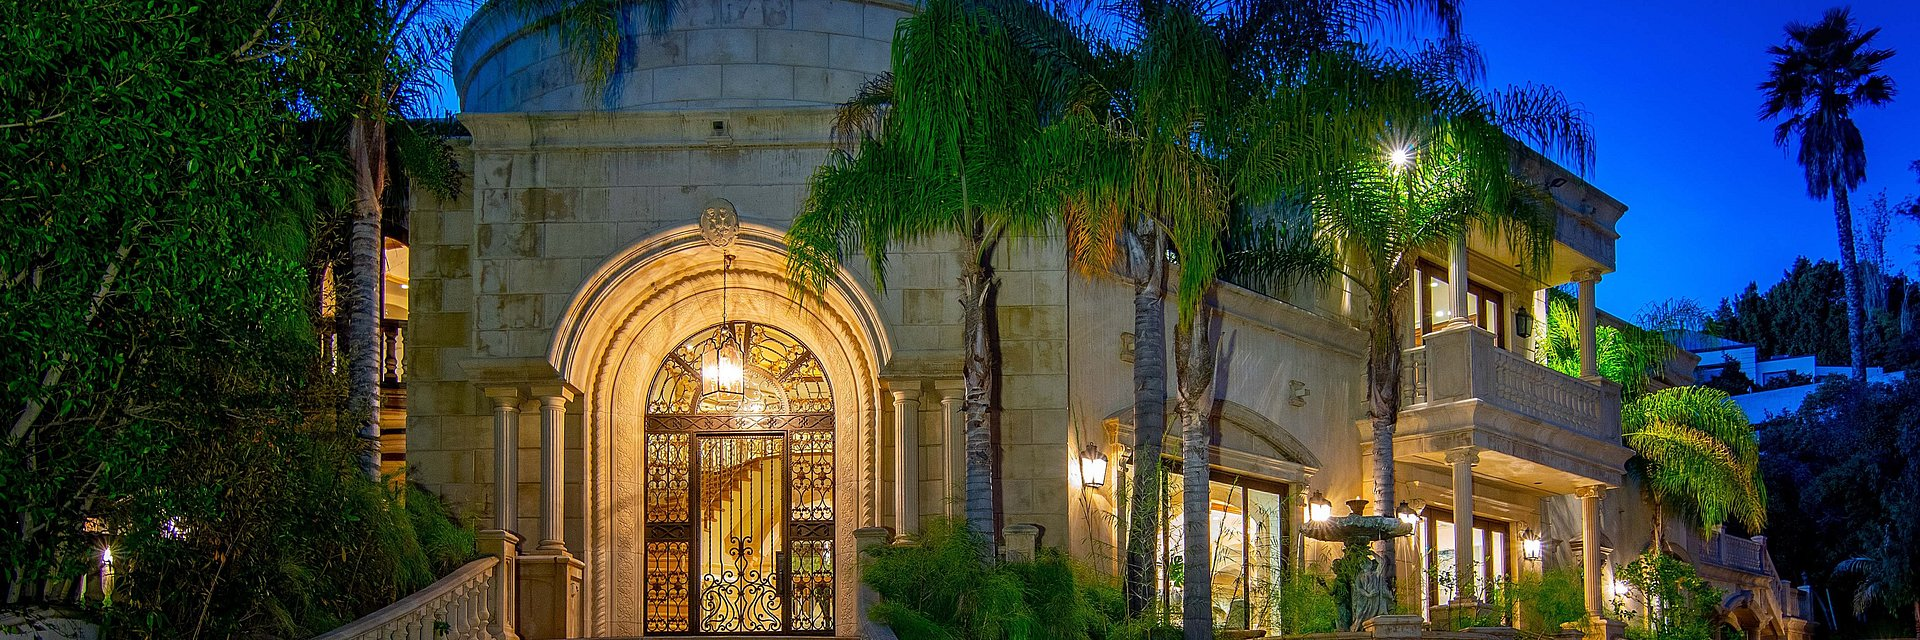 Coldwell Banker Residential Brokerage Lists Beverly Hills Property for $15.25